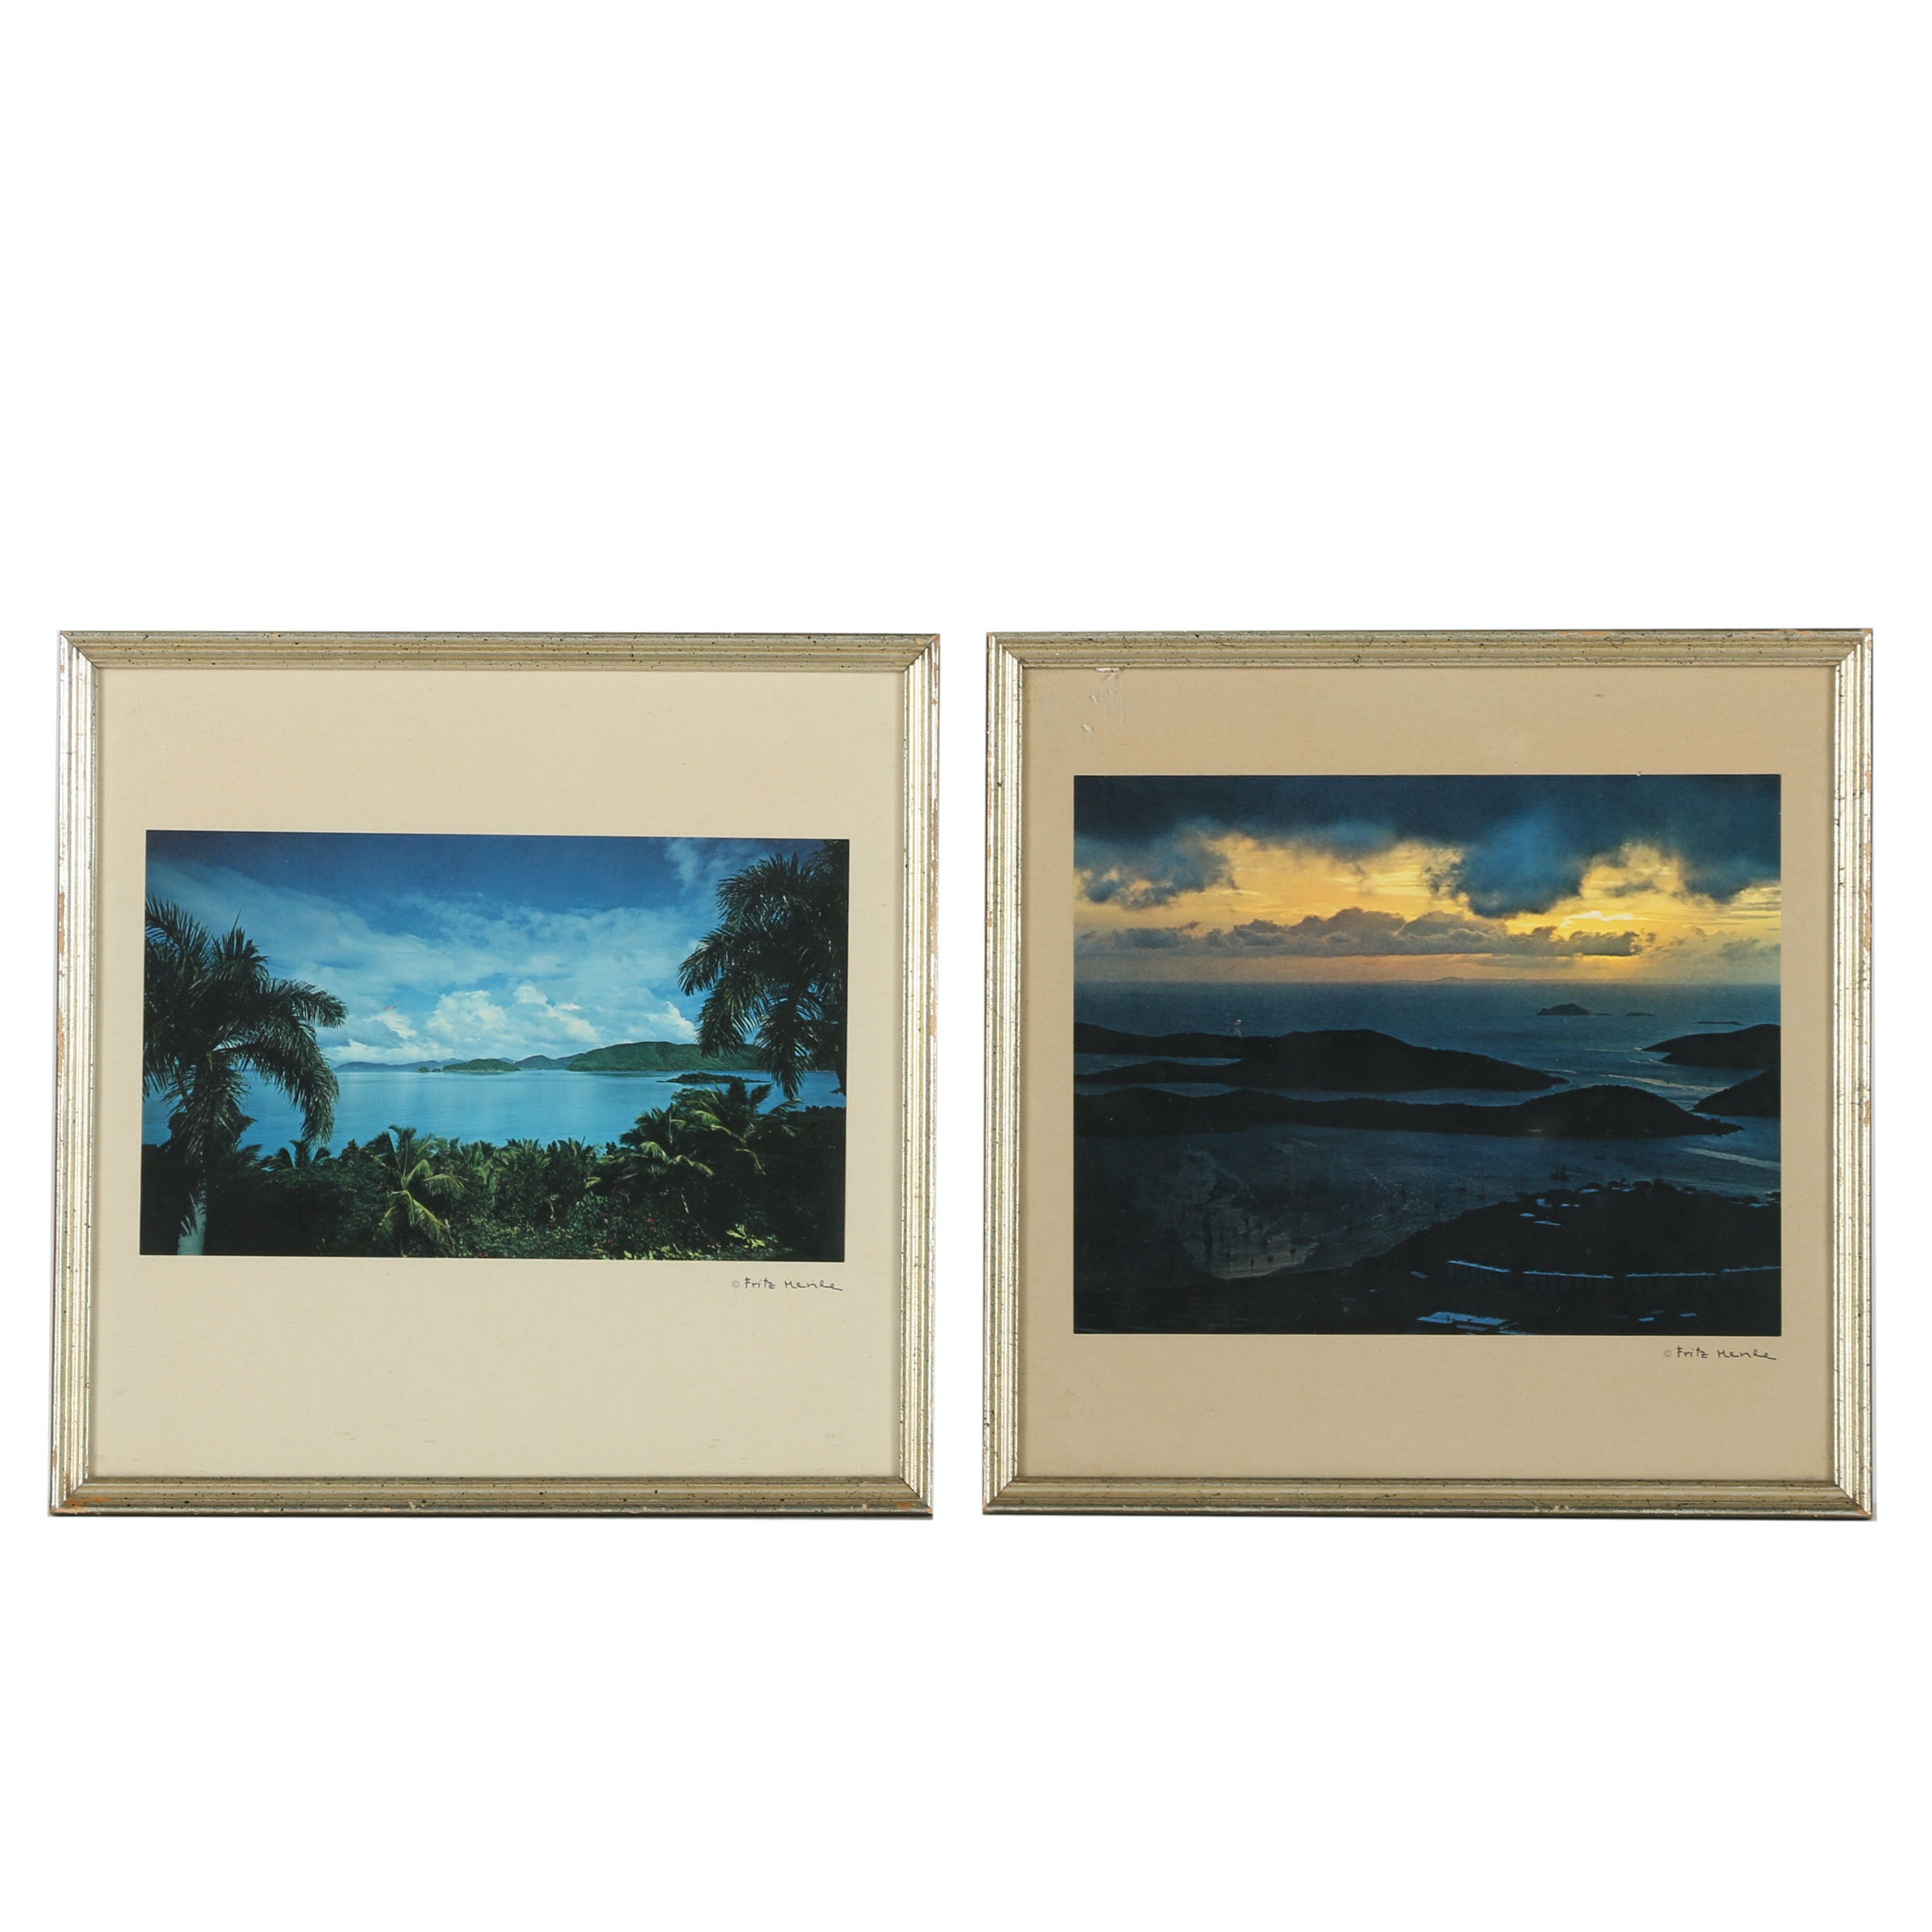 Pair of Giclée Prints on Paper After Fritz Henle of Tropical Landscapes